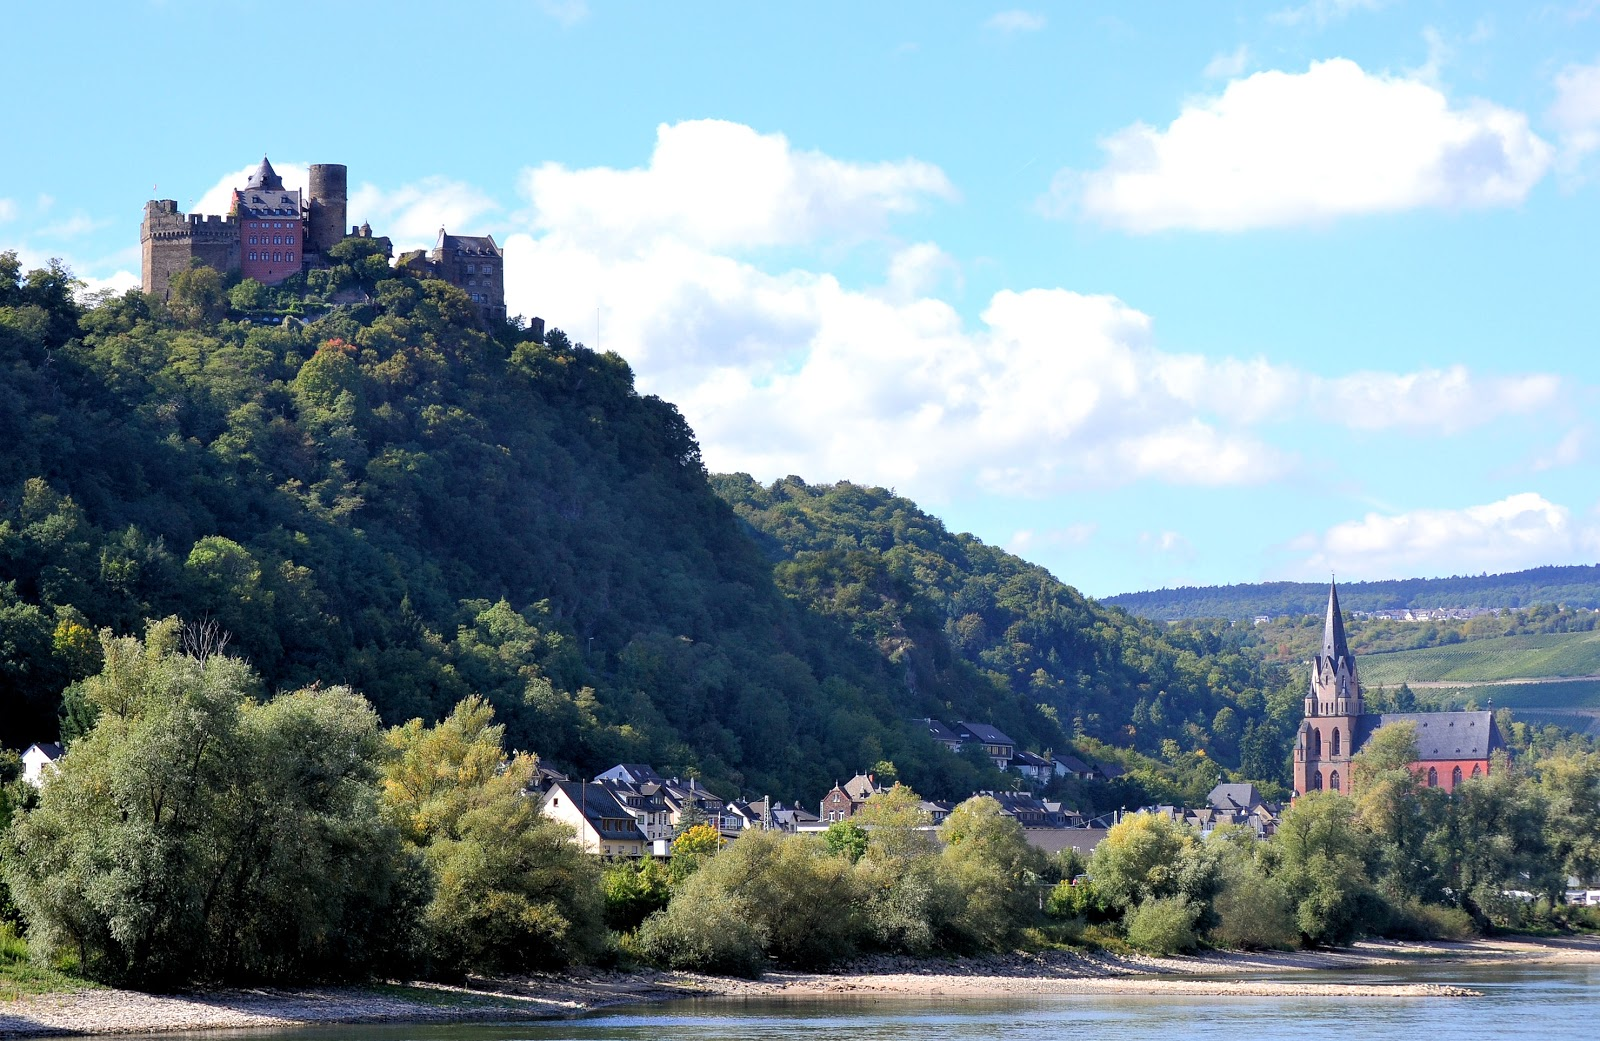 Schönburg Castle looms high above the town of Oberwesel, Germany.